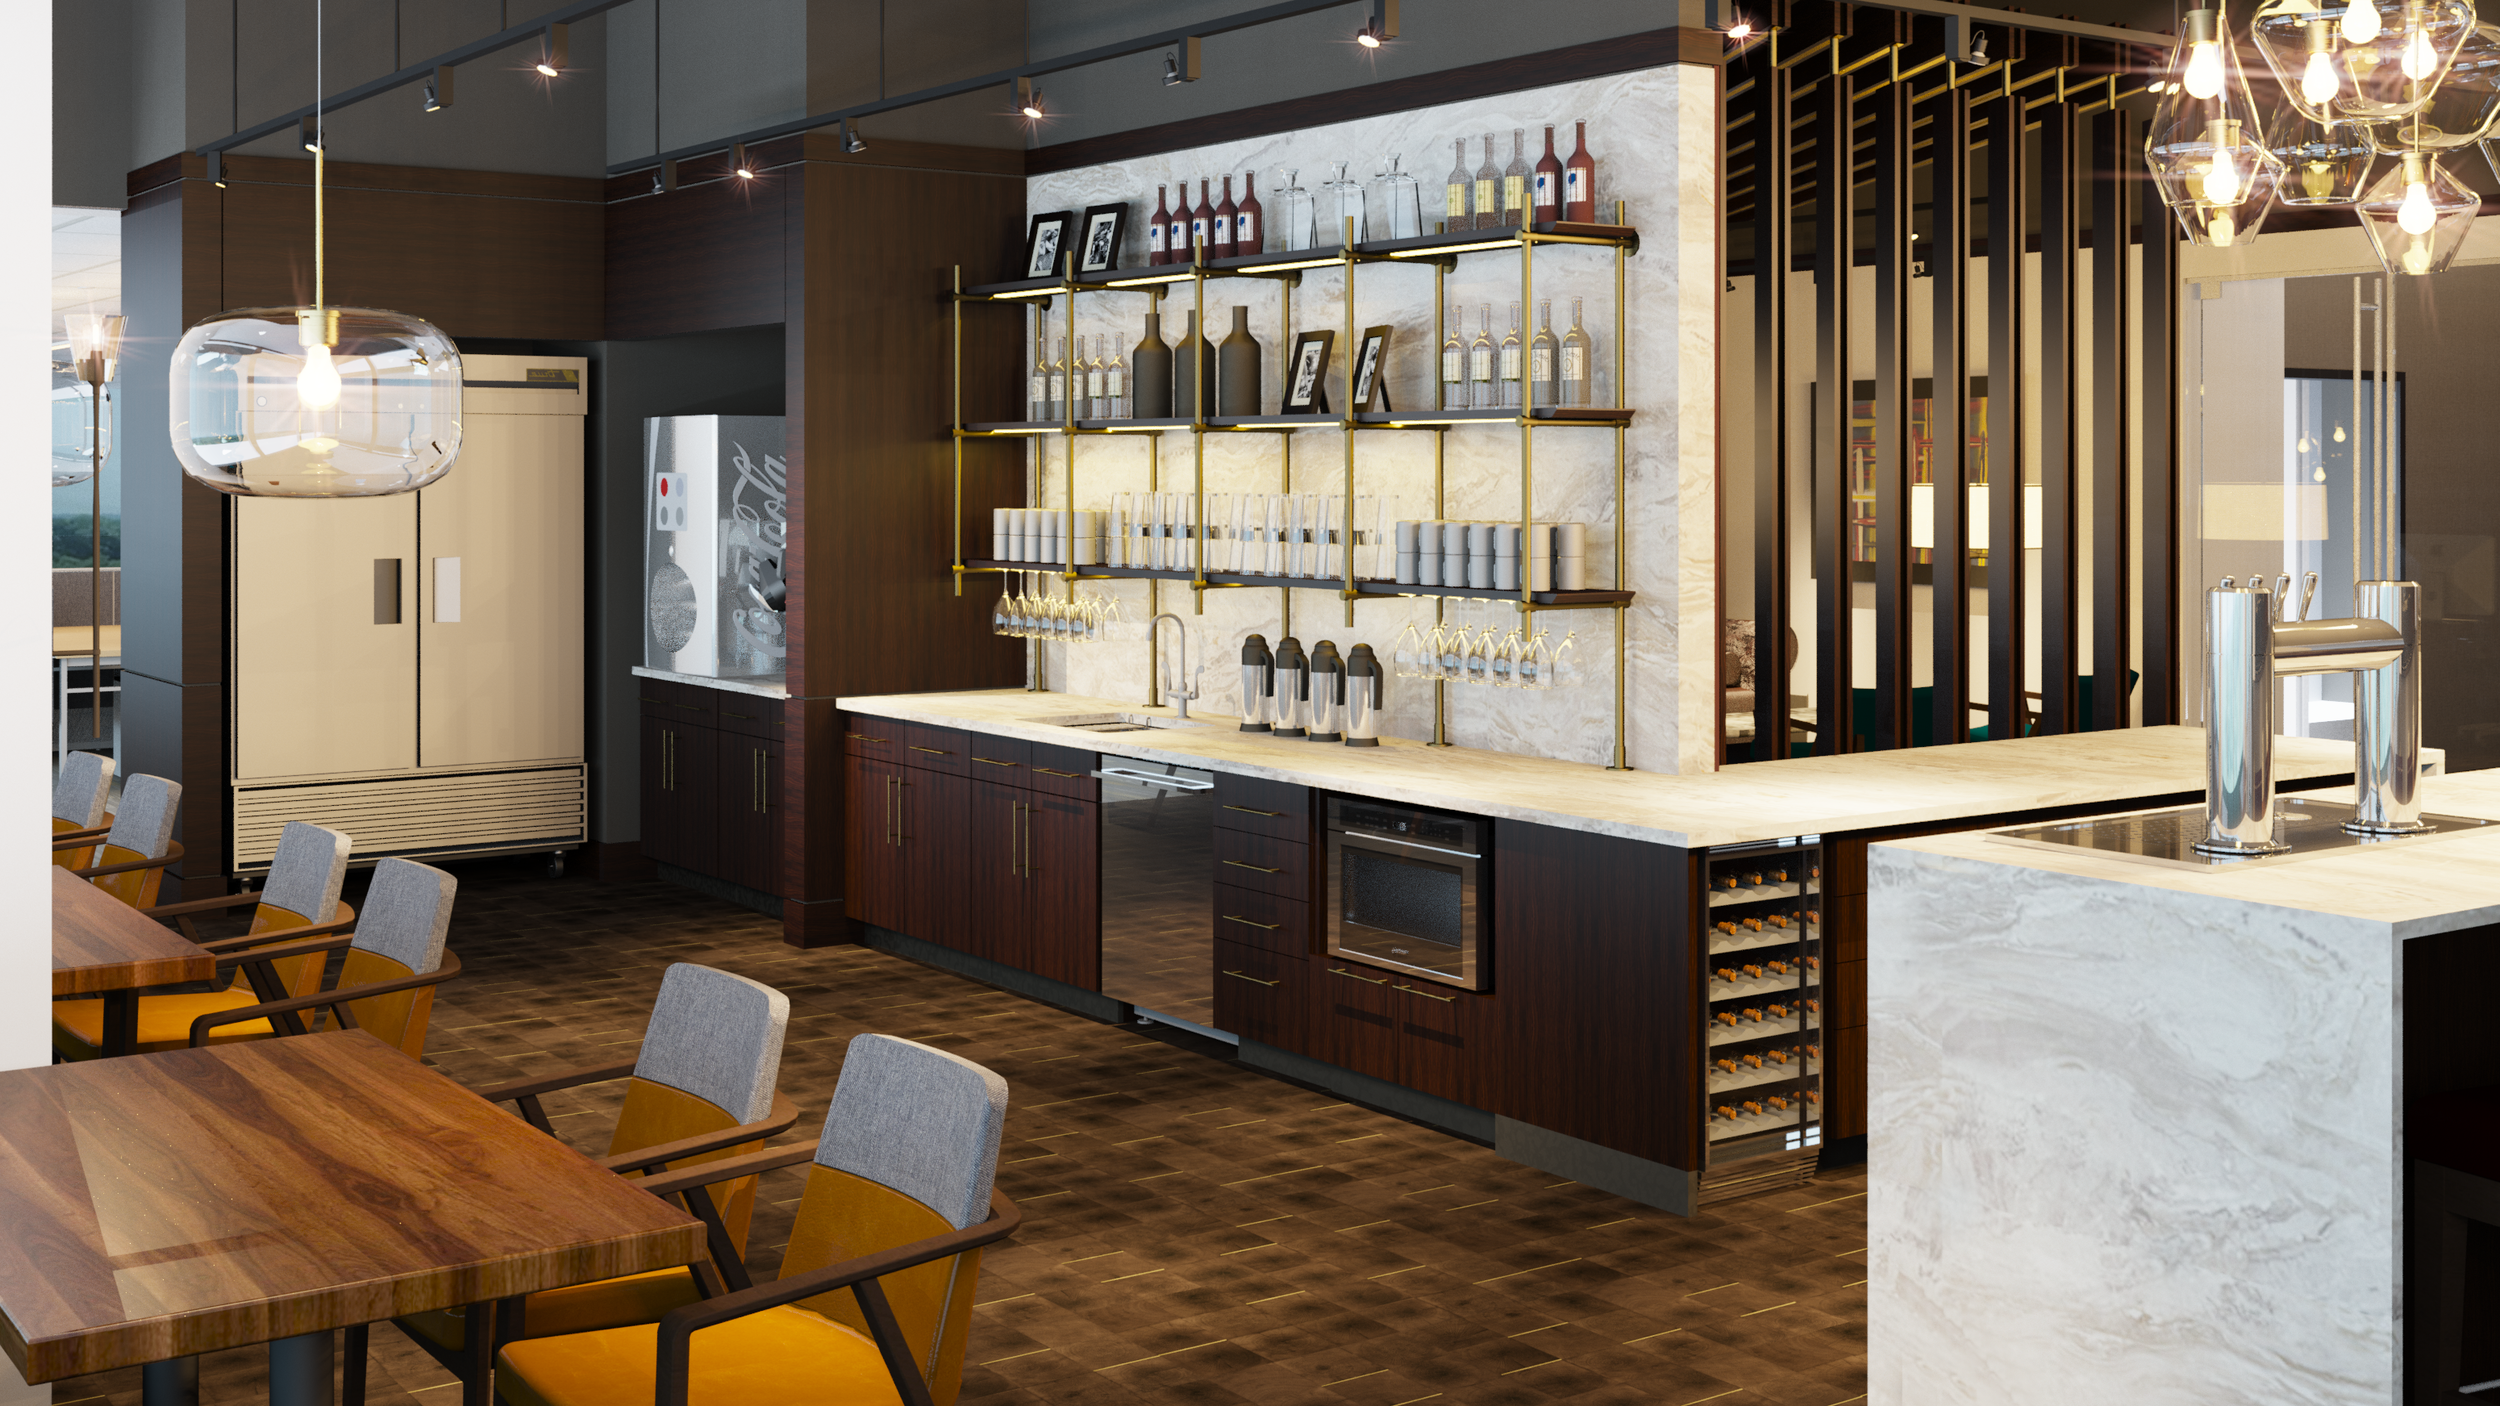 Coopers_Hawk_Hospitality_Kitchen with glow.png